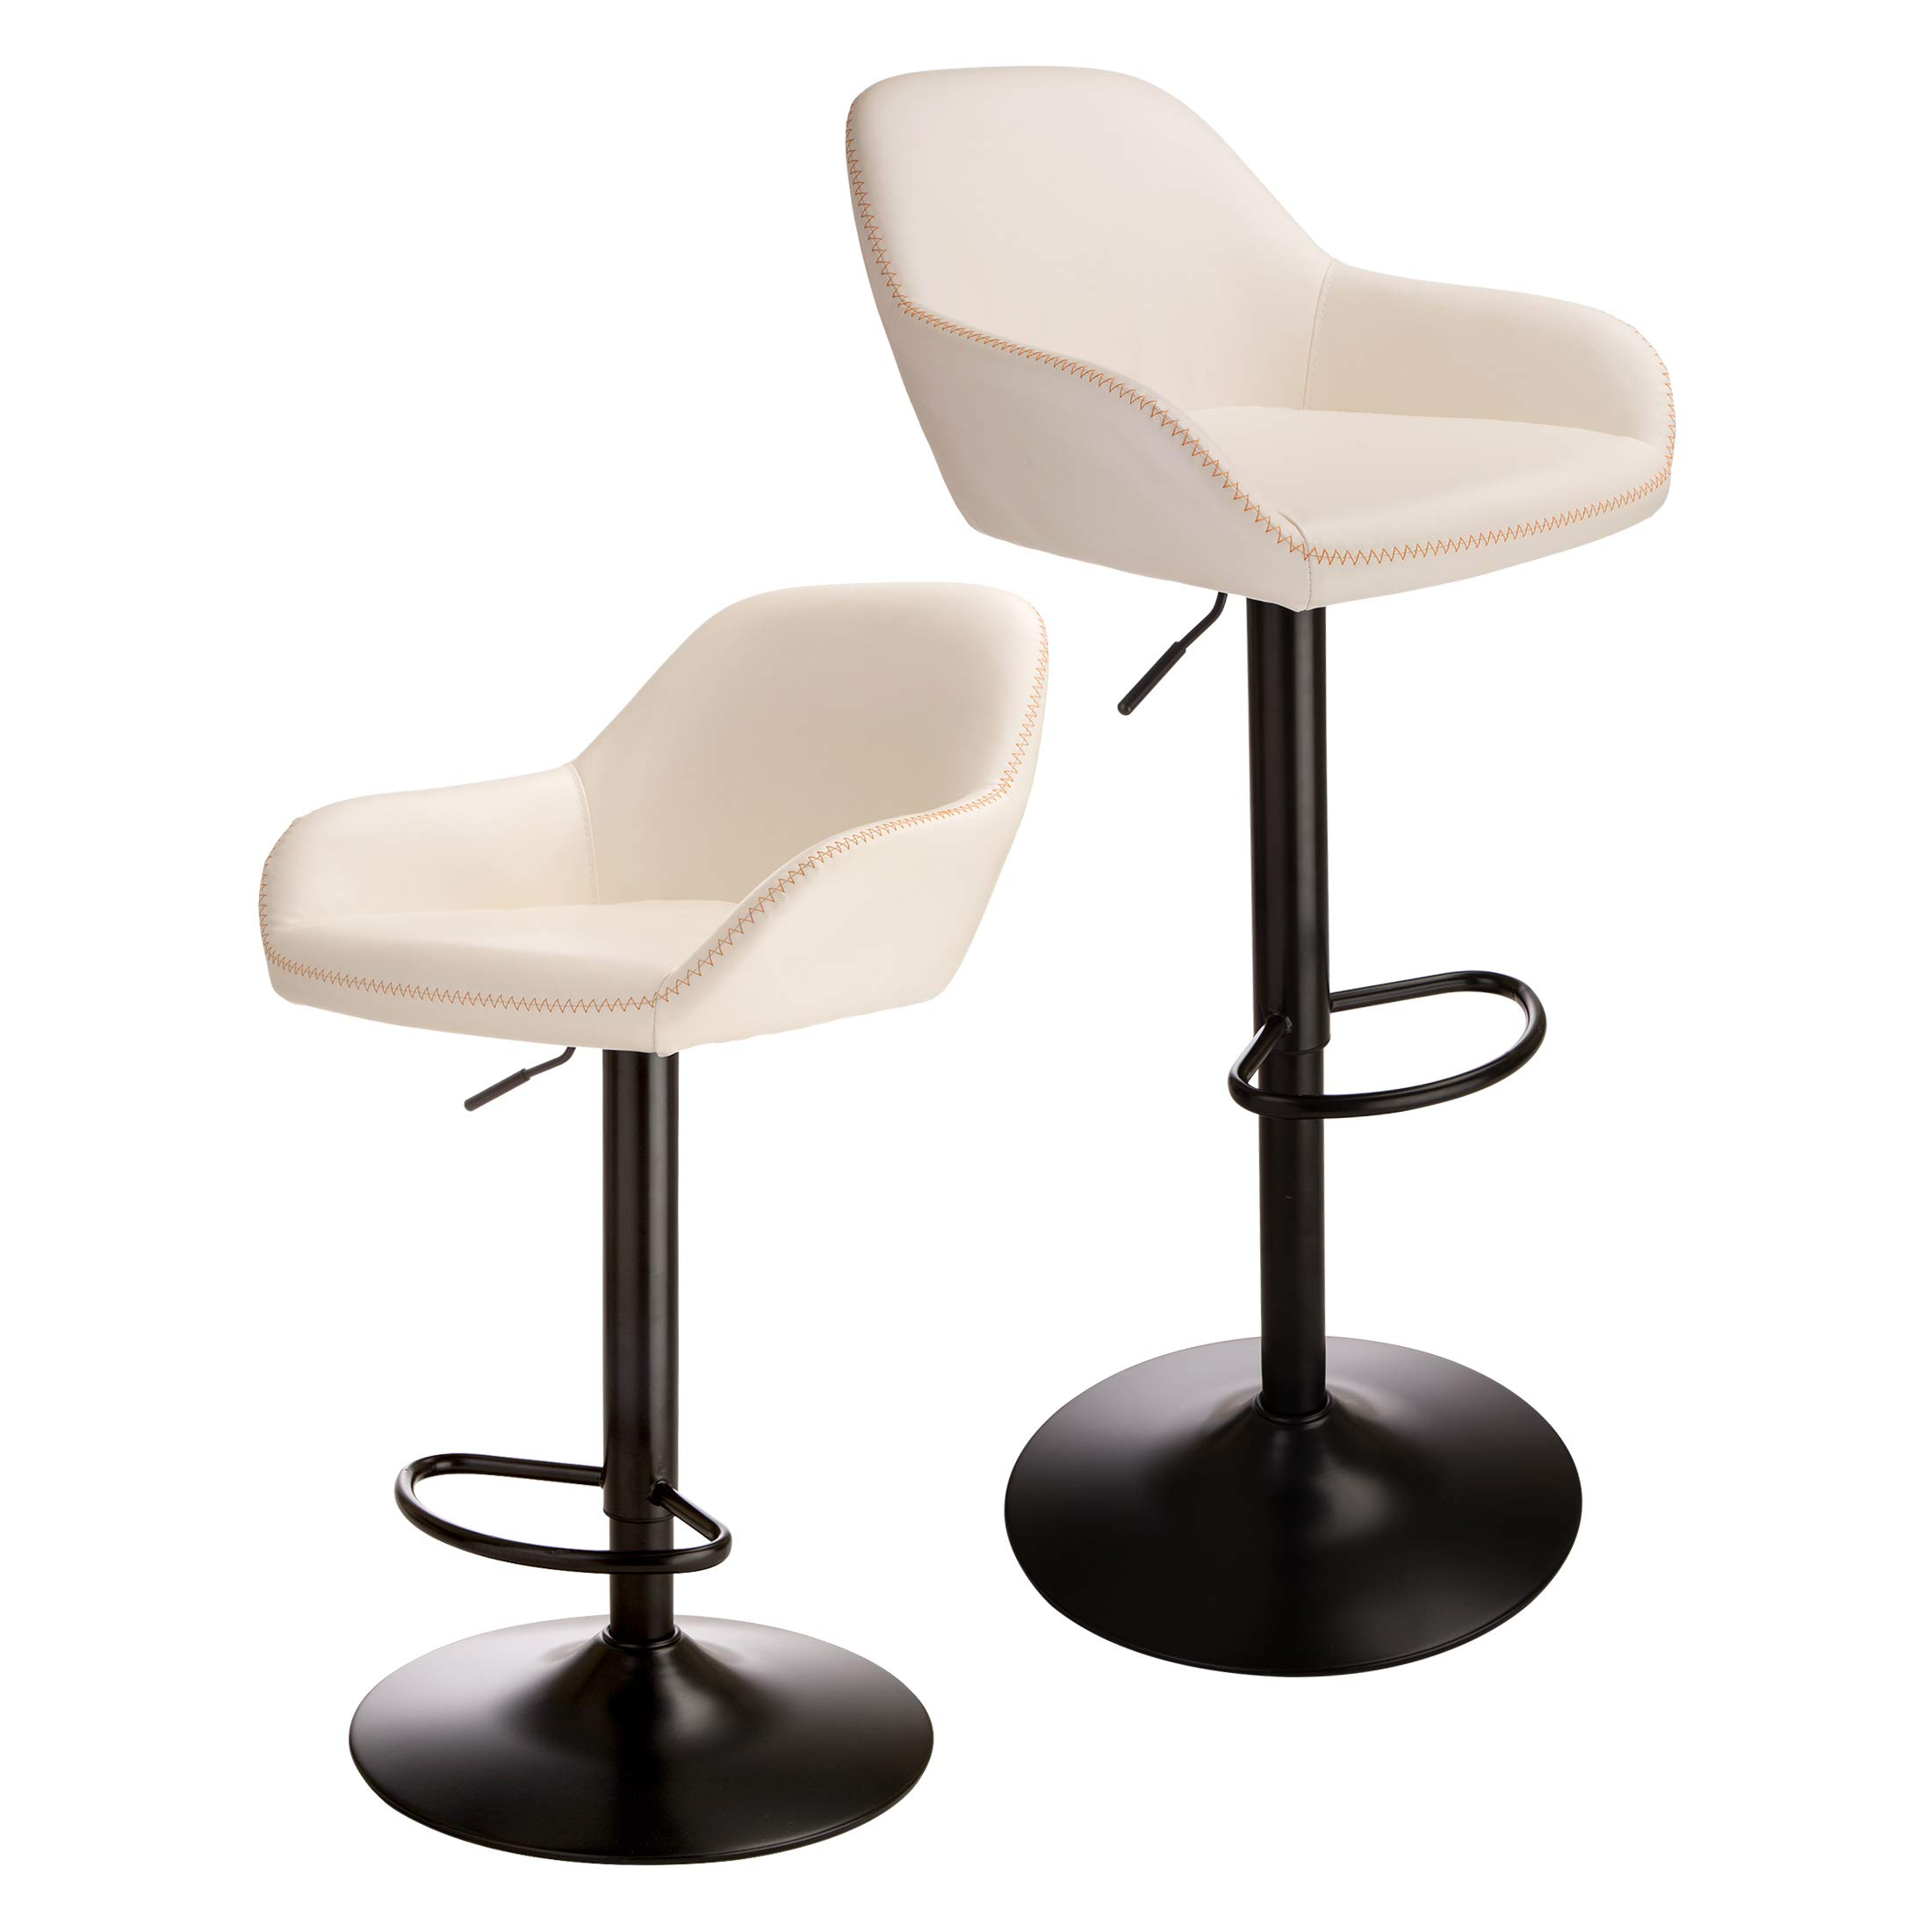 Leather Swivel Chair Dining Chair Pads Amp Cushions